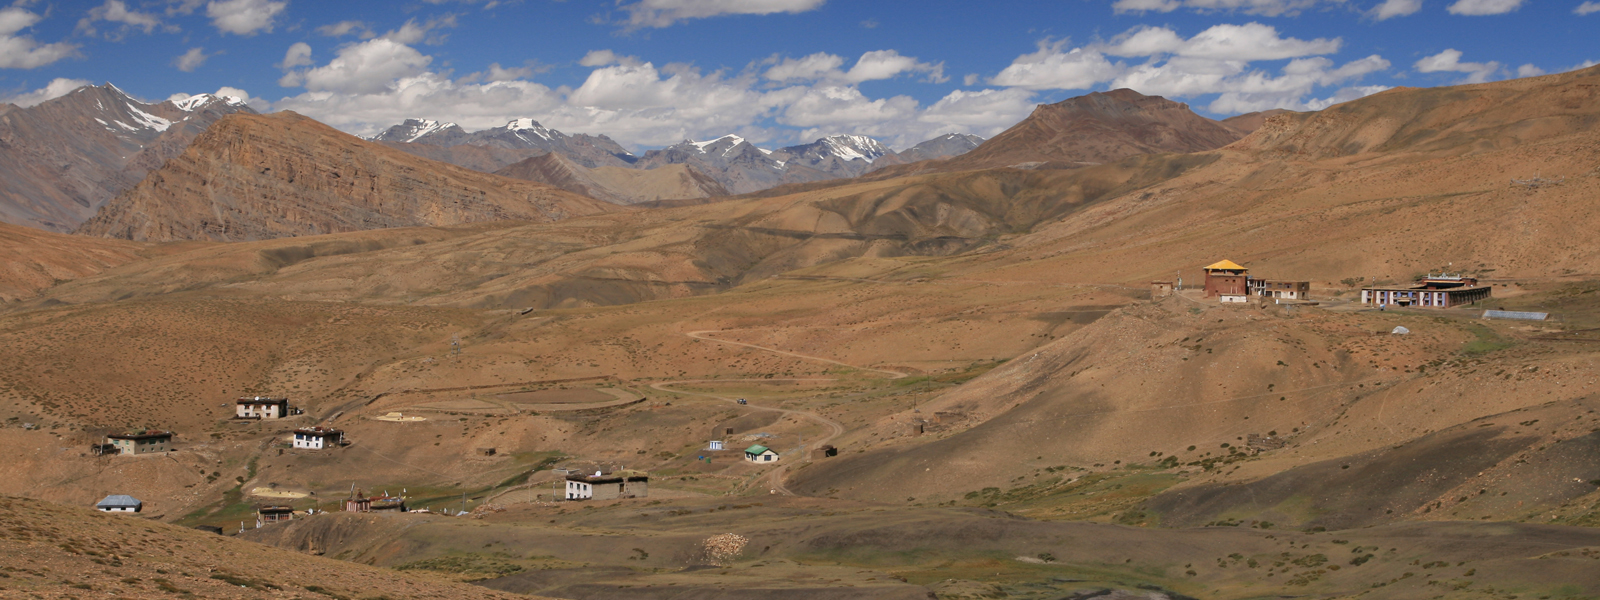 Rolwaling-Pachhermo and Tashi Lapcha Pass Trek